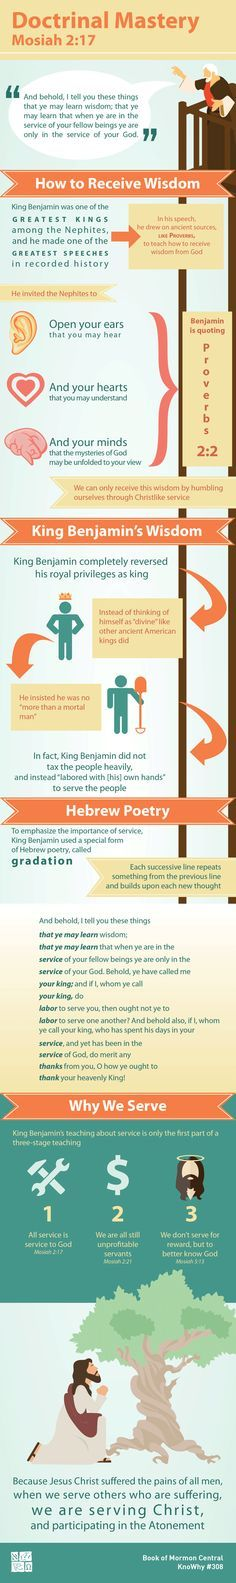 Doctrinal Mastery Mosiah 2:17 Infographic by Book of Mormon Central